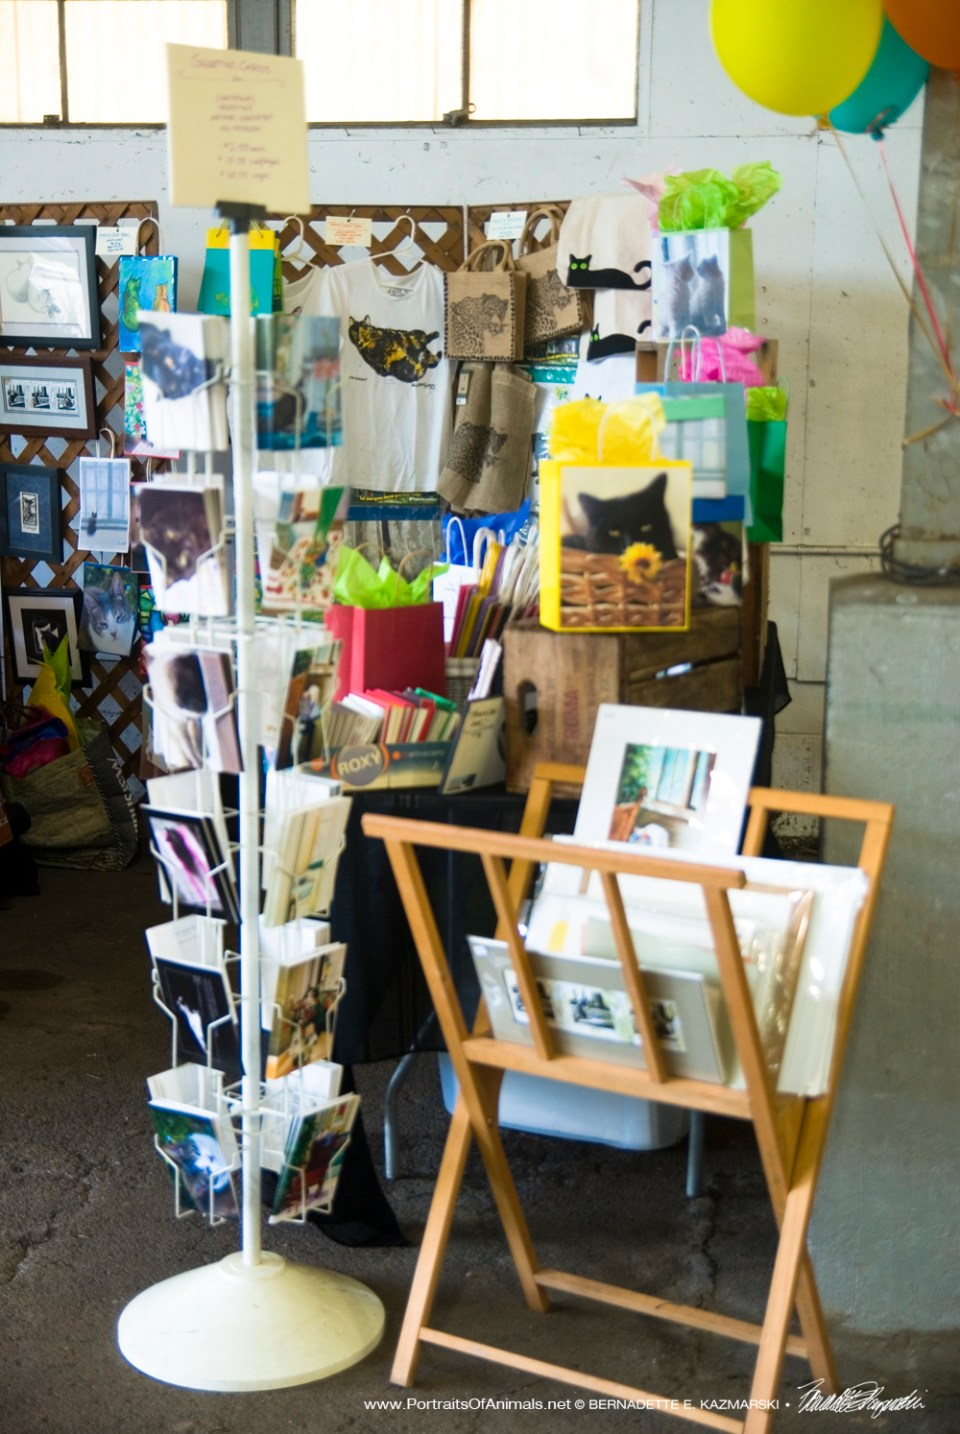 Greeting cards and the print rack at the entrance.